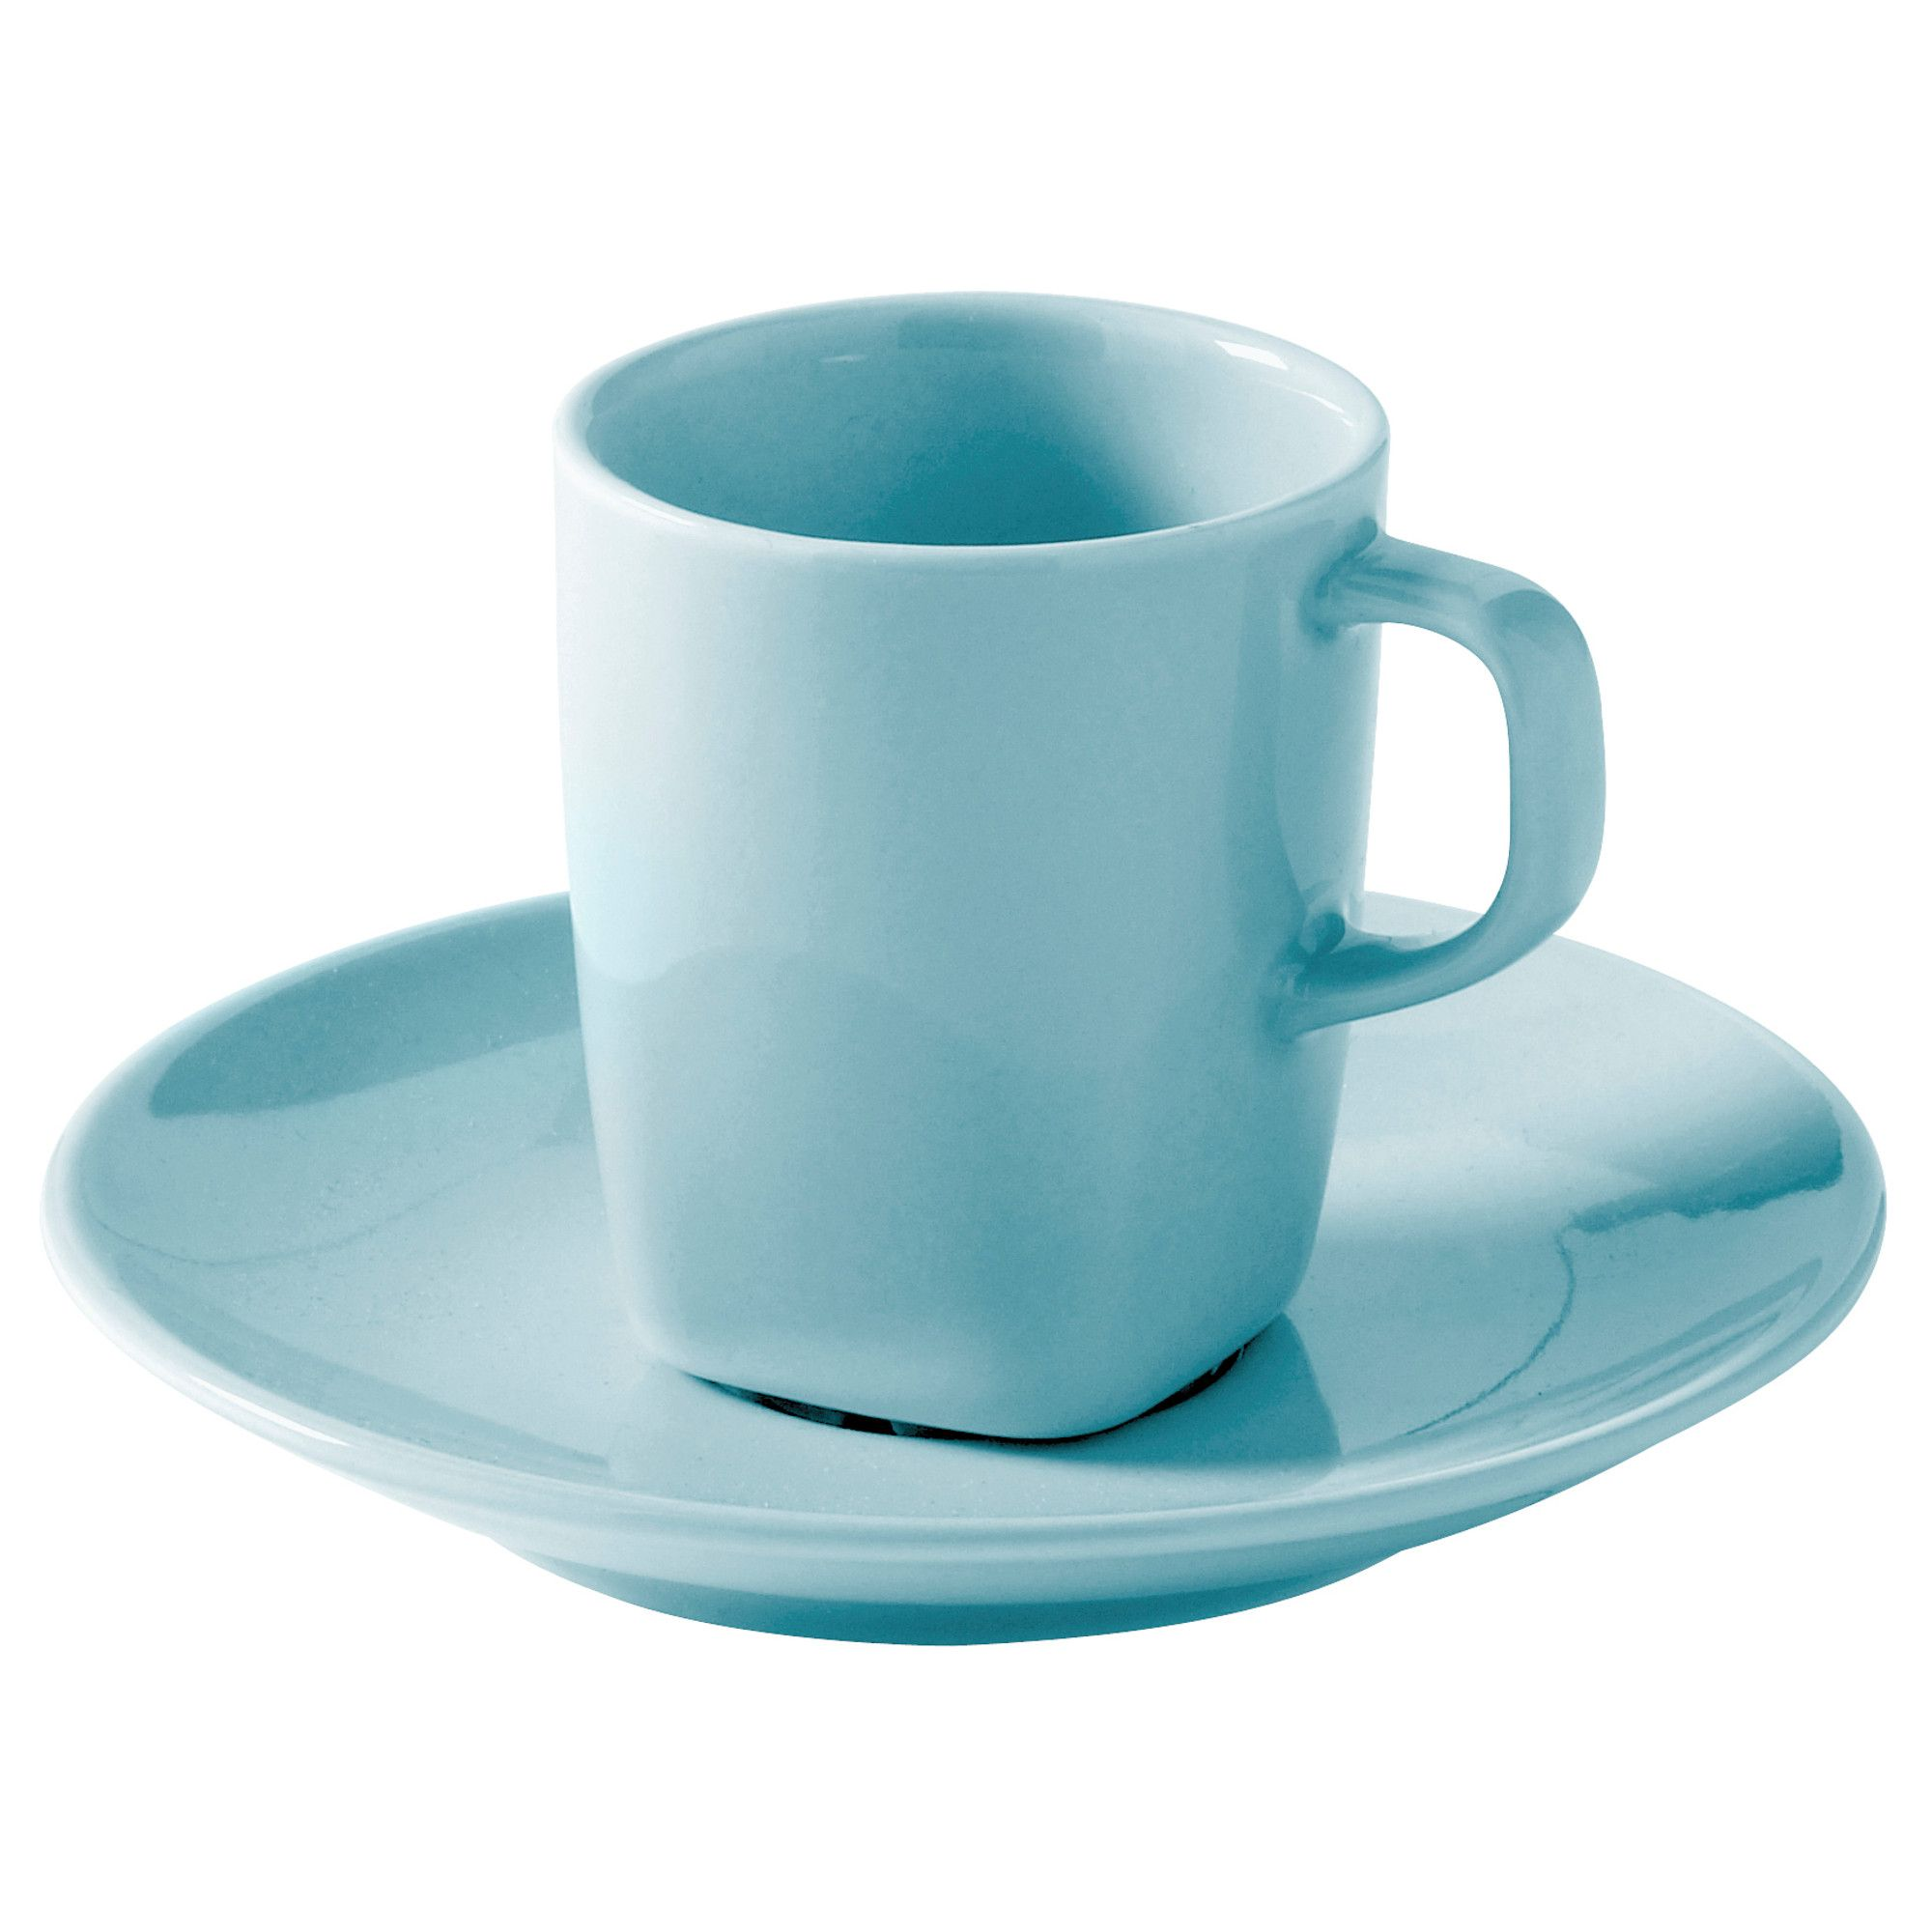 2 99 Ikea 365 Espresso Cup And Saucer Ikea Aqua Love